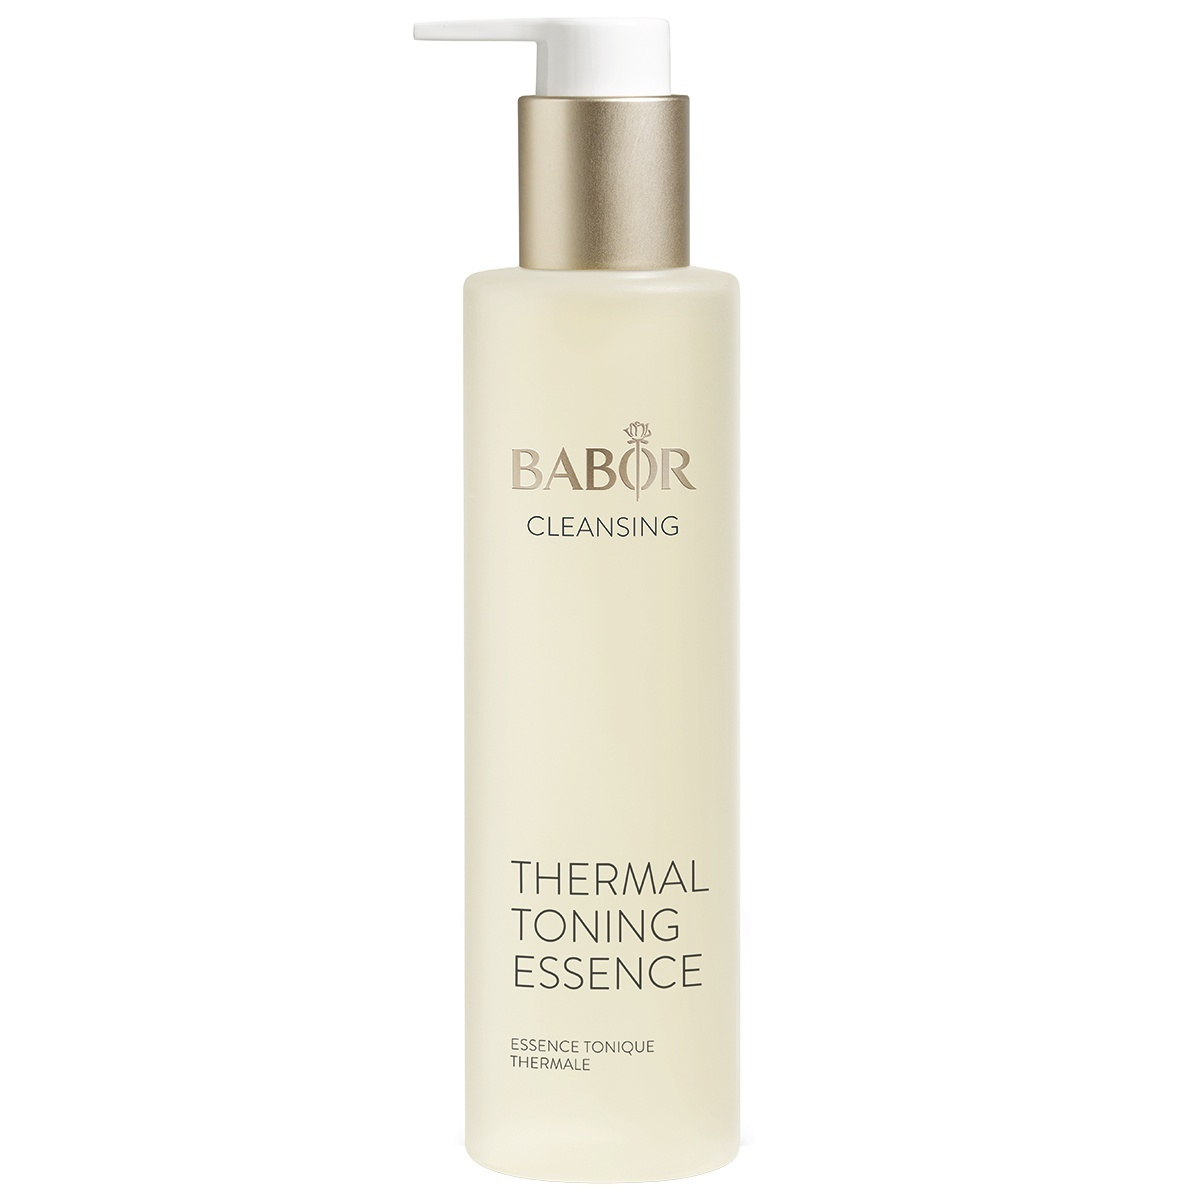 Эссенция-тоник c термальной водой Babor Thermal Toning Essence 200ml